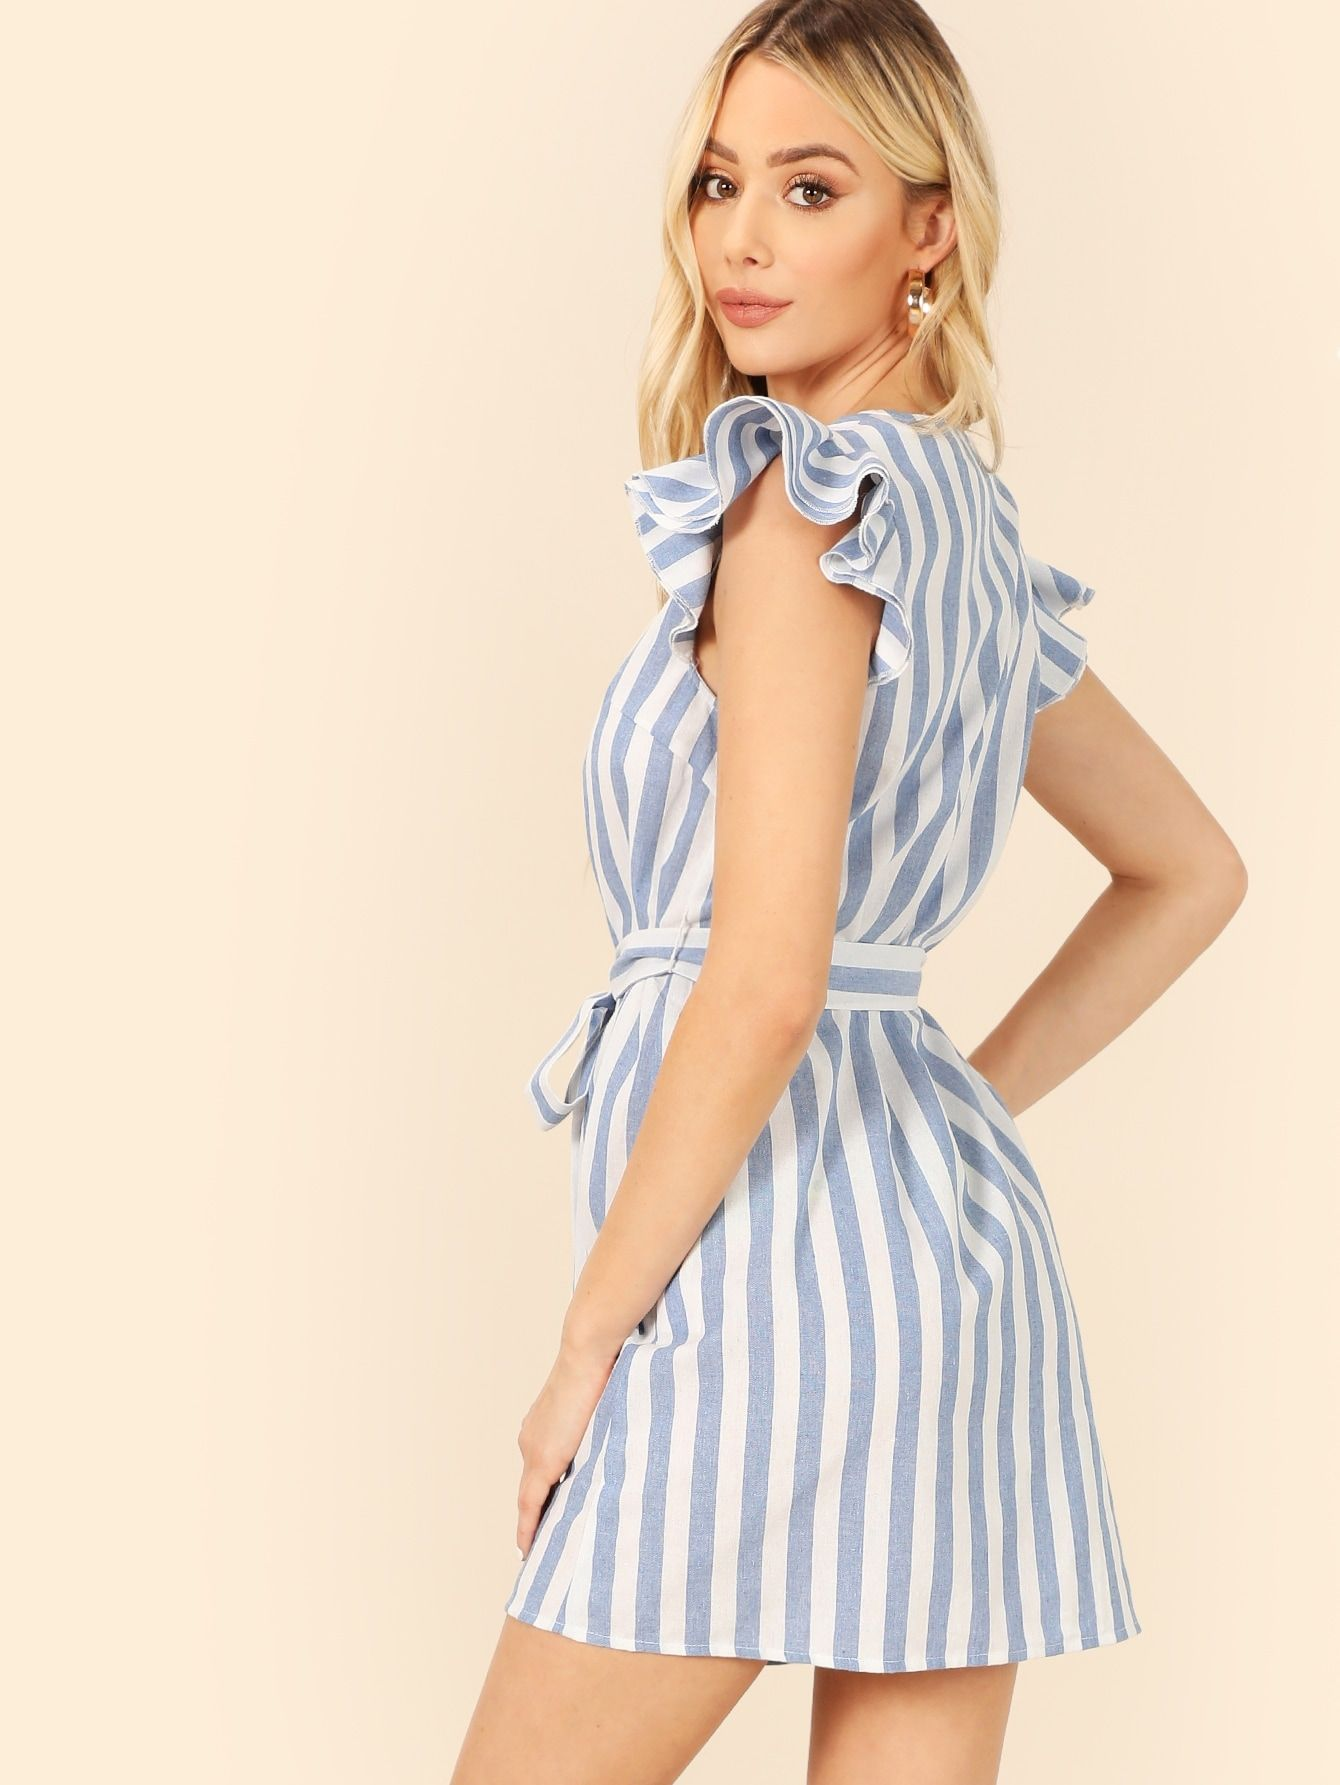 Ruffle Cap Sleeve Self Belted Striped Dress Shein Short Summer Dresses Striped Dress Summer Dress Outfits [ 1785 x 1340 Pixel ]